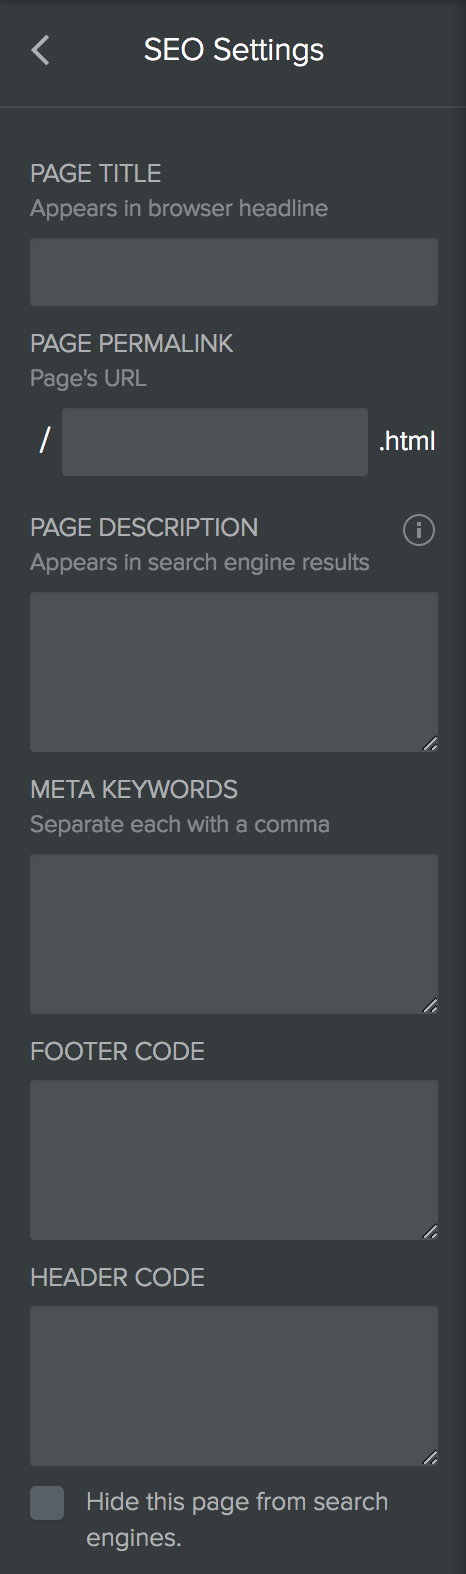 Weebly New Page SEO Settings